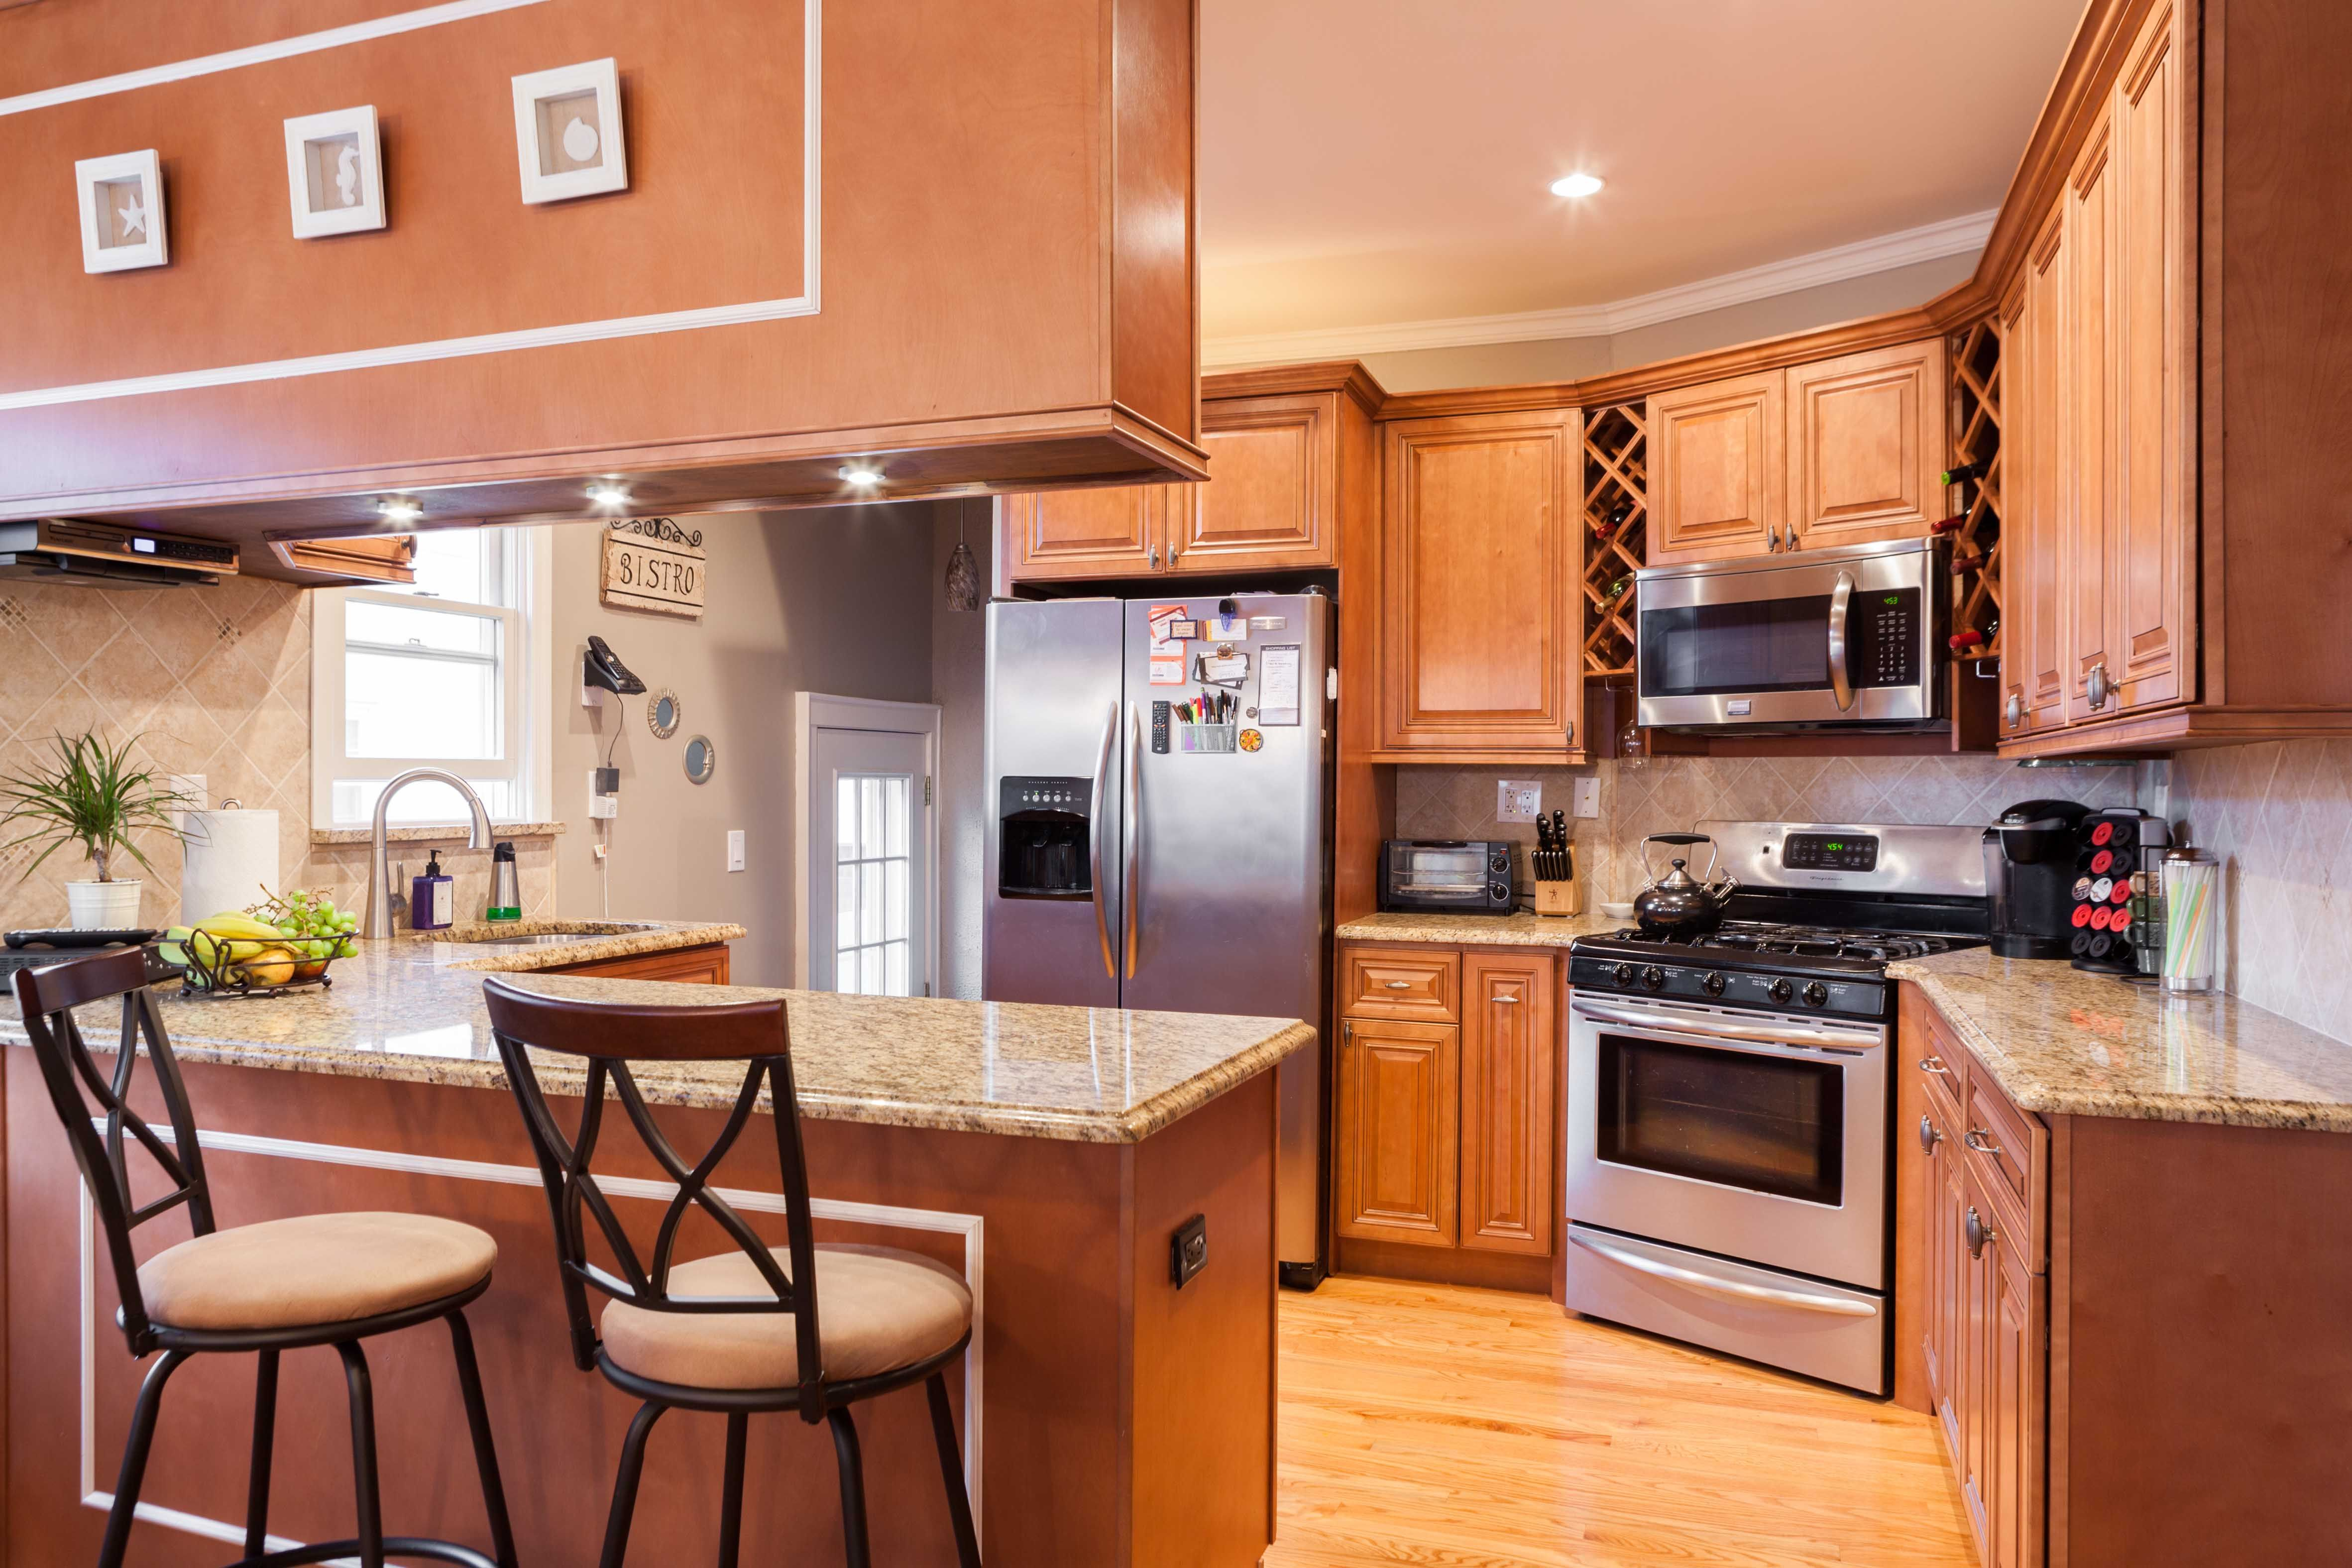 Juk traditional maple wood cabinets in cinnamon glaze style co